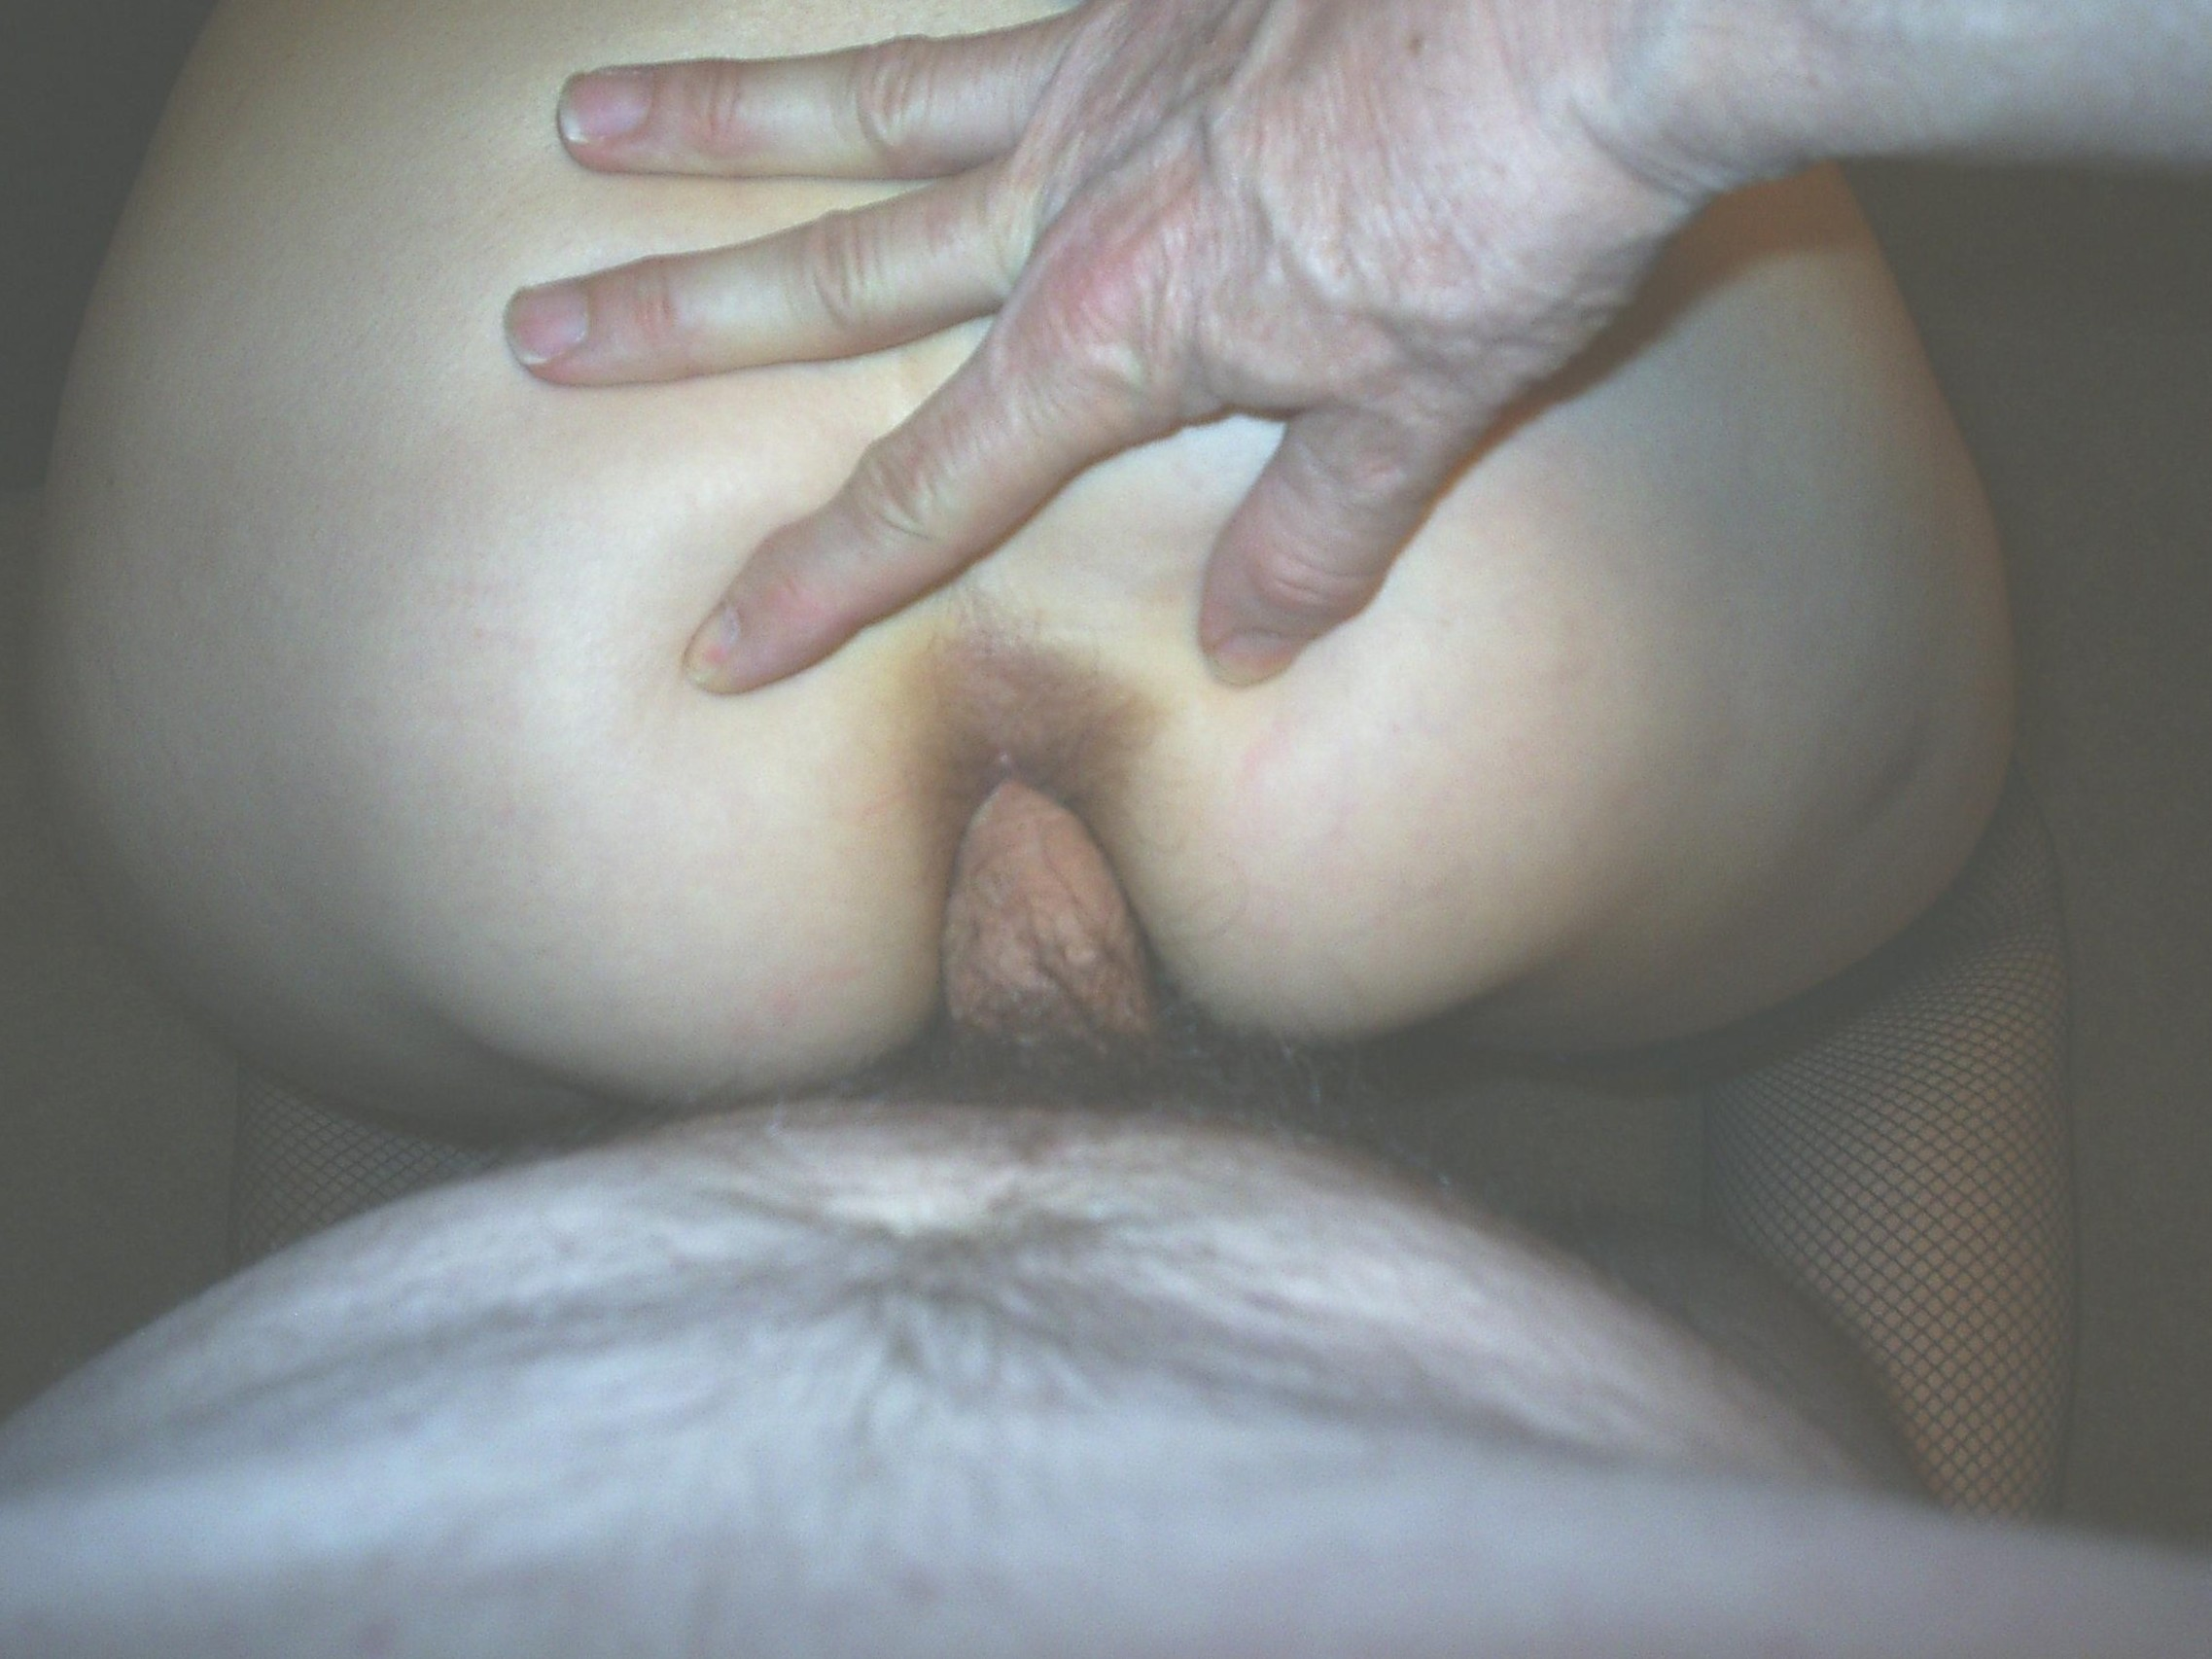 My cock in her arse.